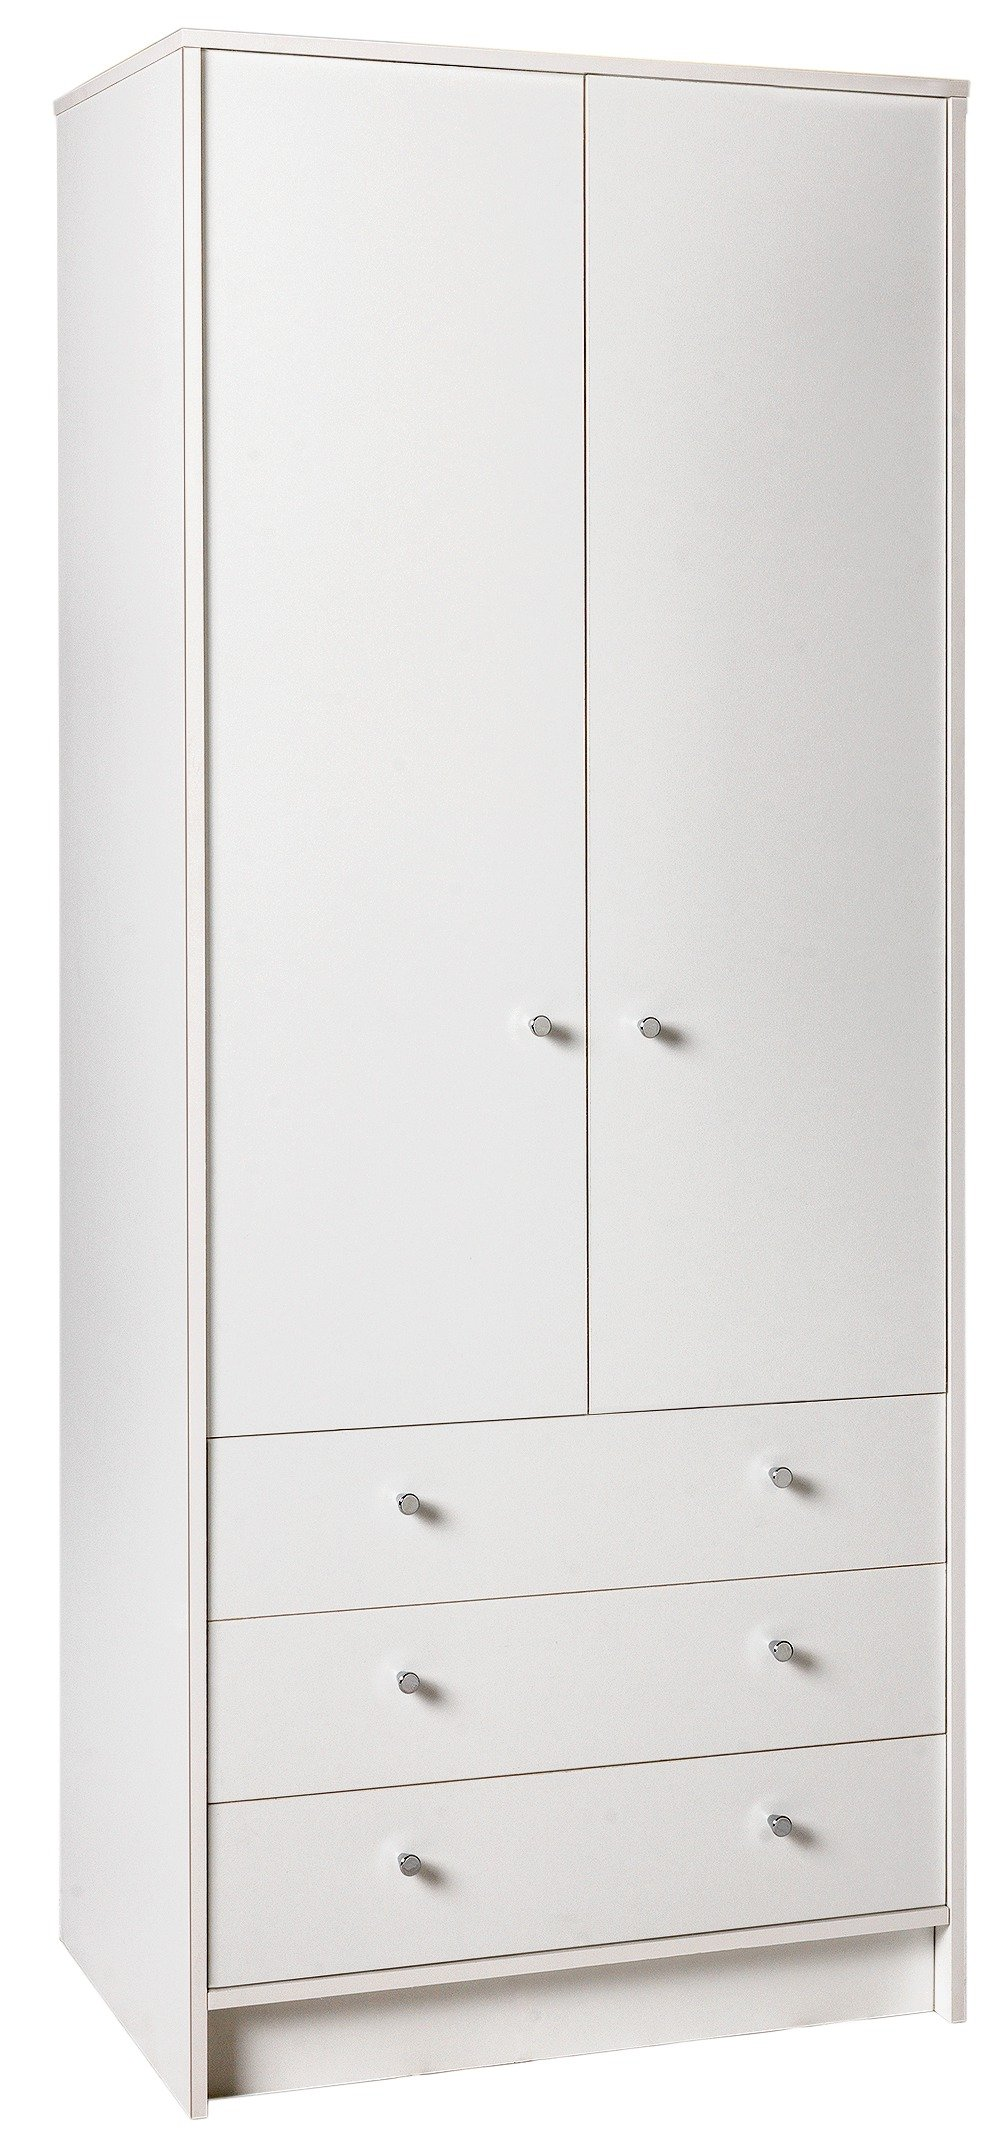 white wardrobes home malibu 2 door 3 drawer wardrobe - white XPPBFZH